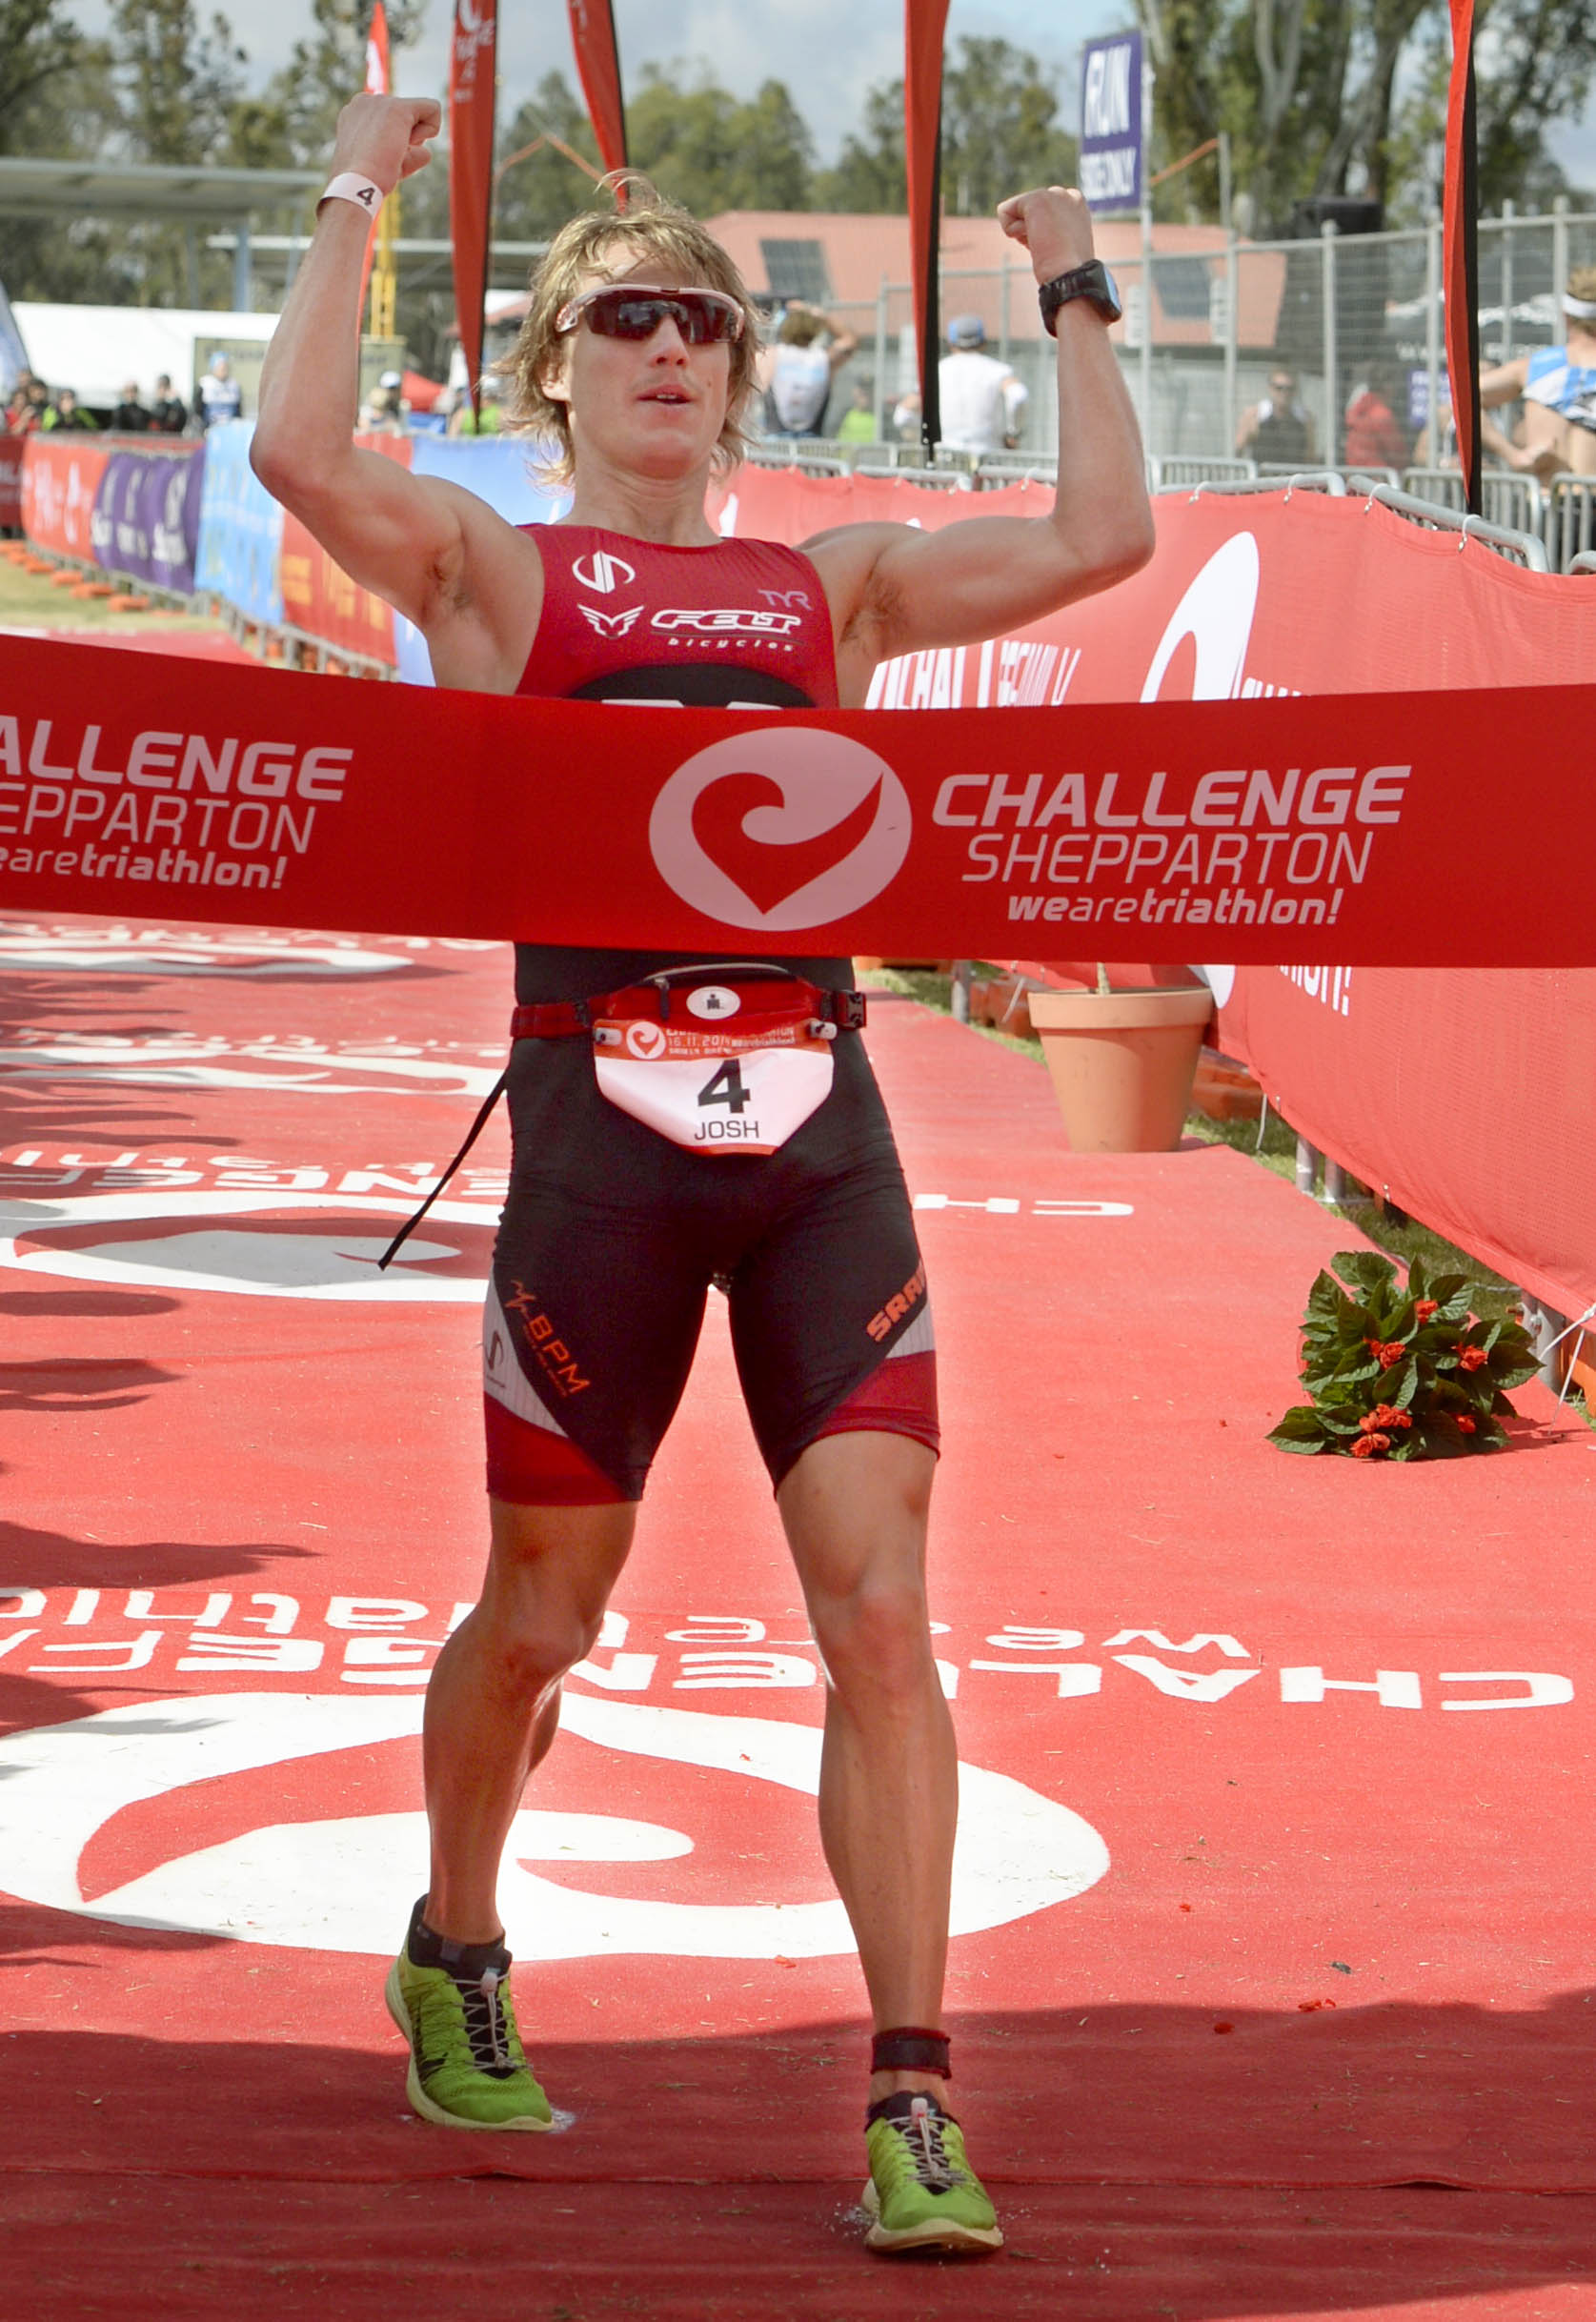 Josh Amberger added another victory to his resume today in tough conditions at Challenge Shepparton. Image credit: Julie Mercer / Shepparton News